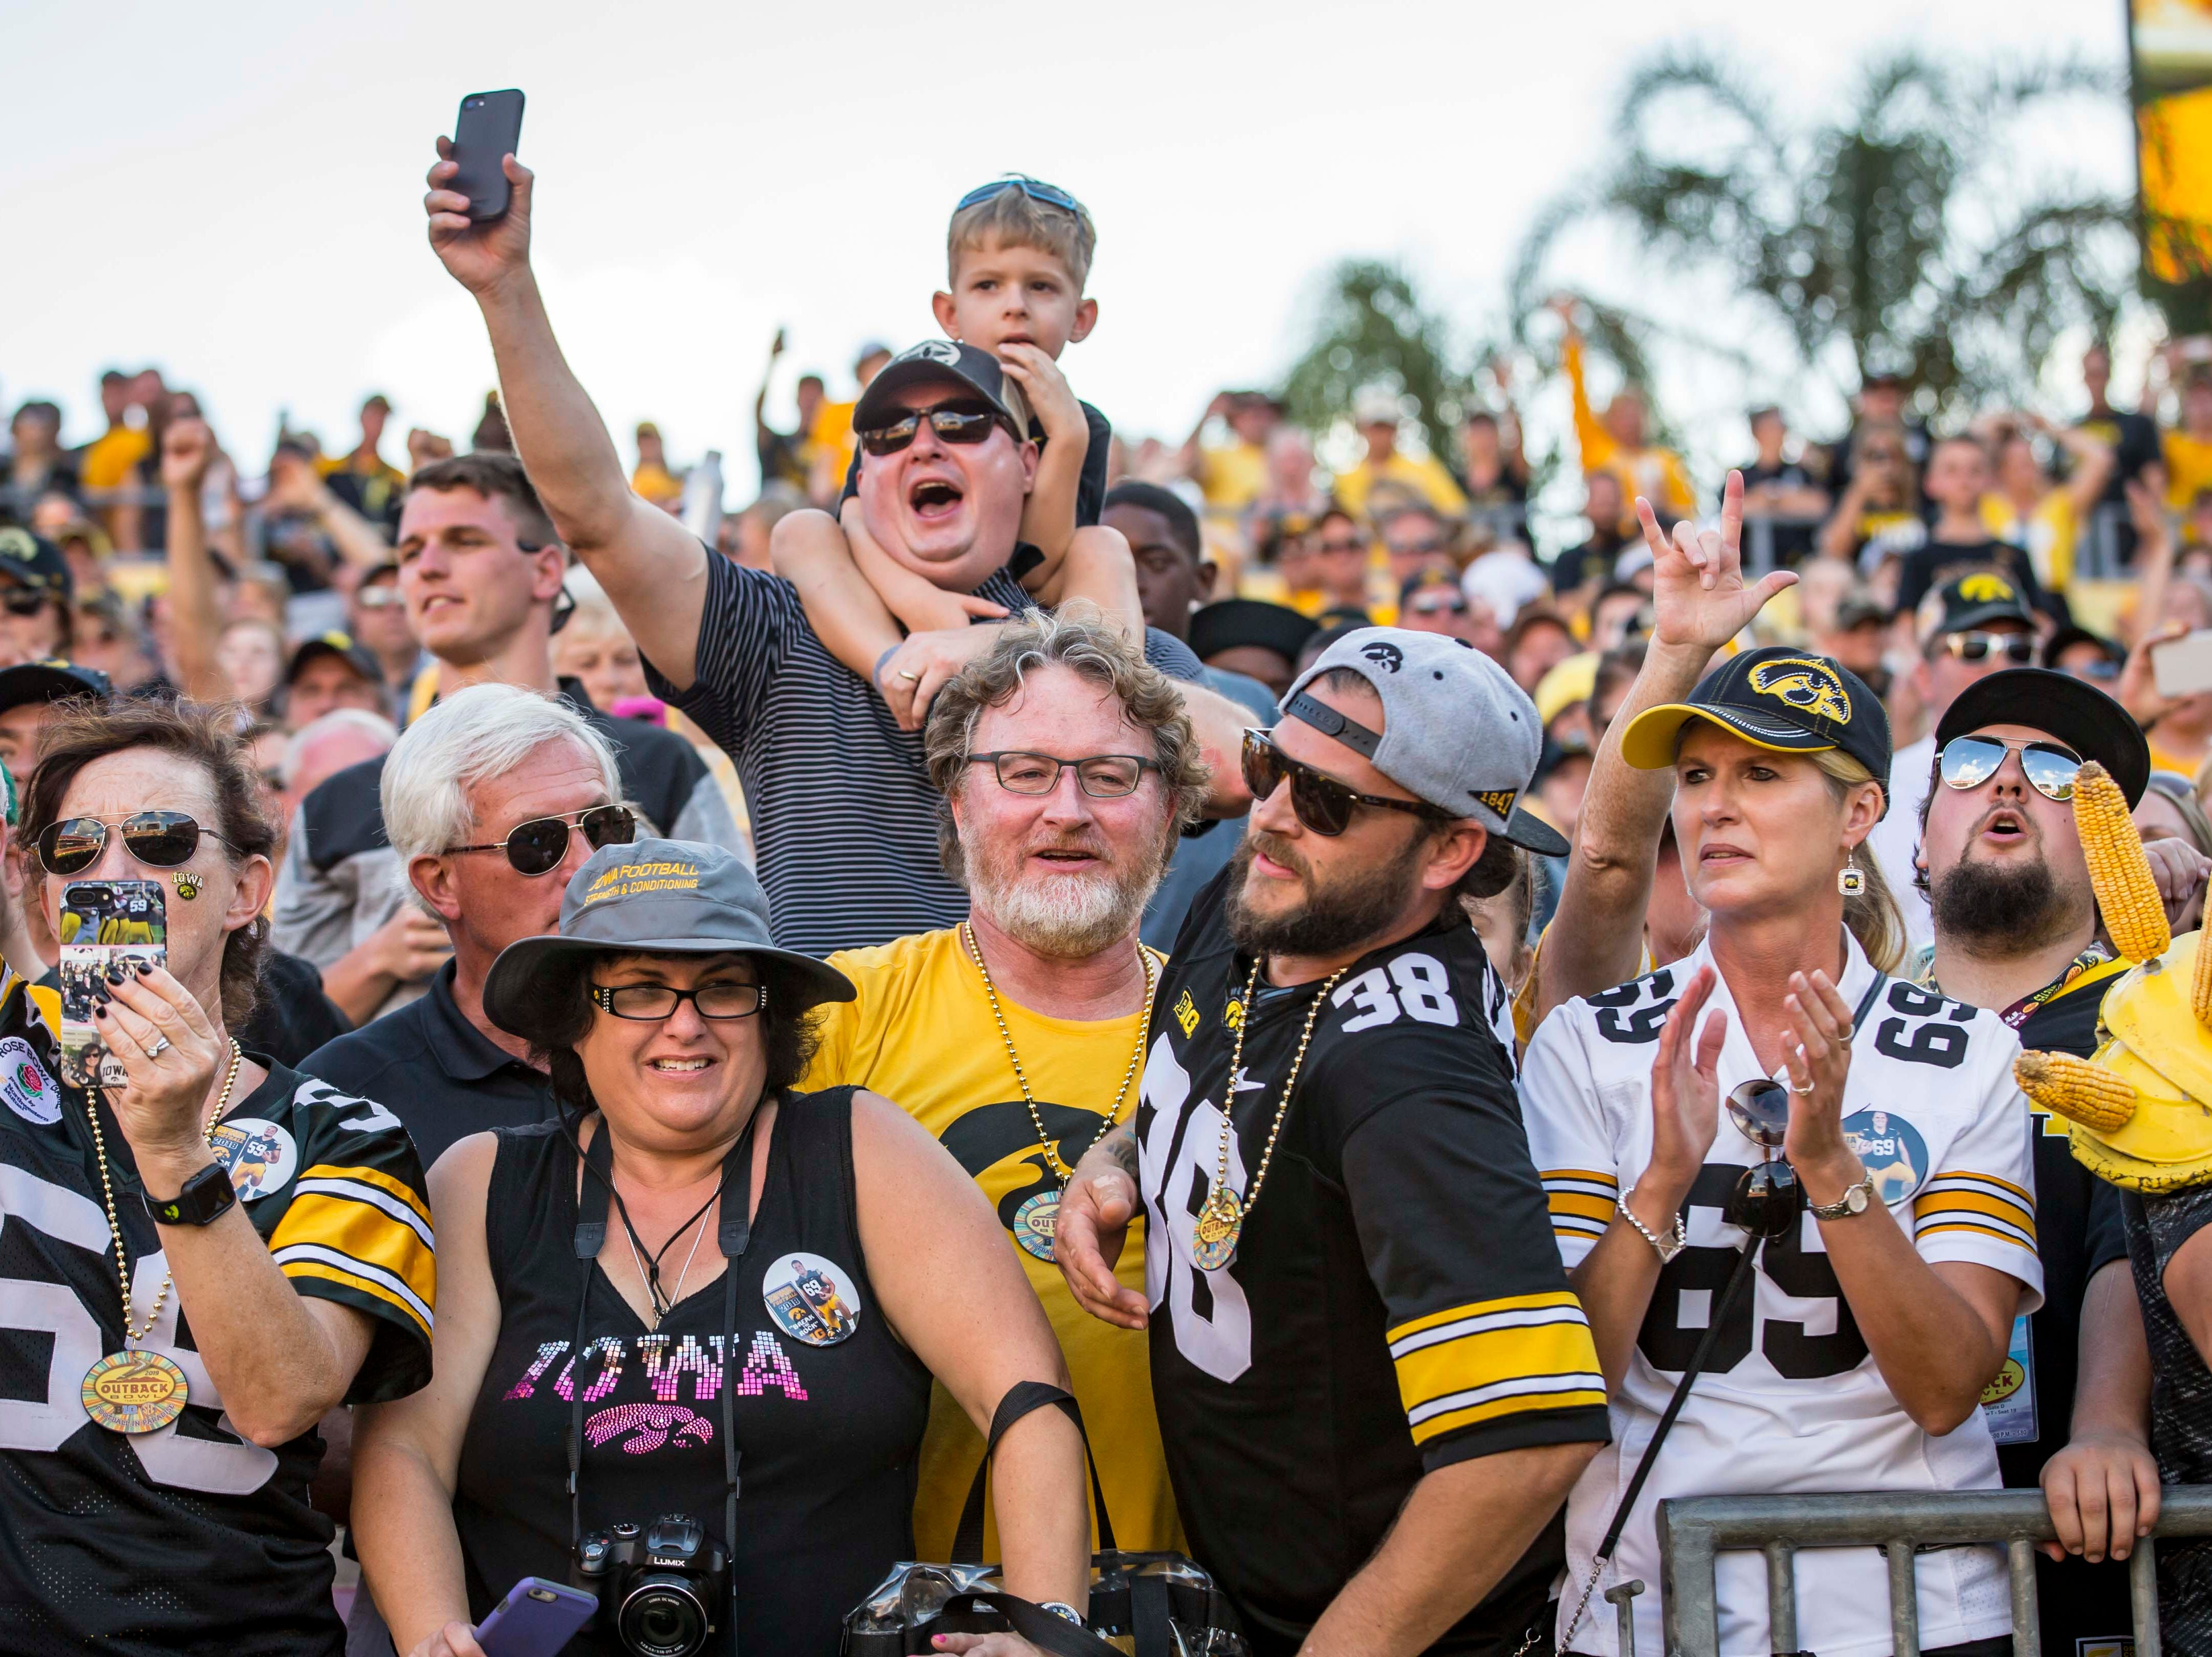 Fans celebrate in the second half at the Outback Bowl Tues., Jan. 1, 2019, at Raymond James Stadium in Tampa, Florida. Iowa defeated Mississippi State 27-22.